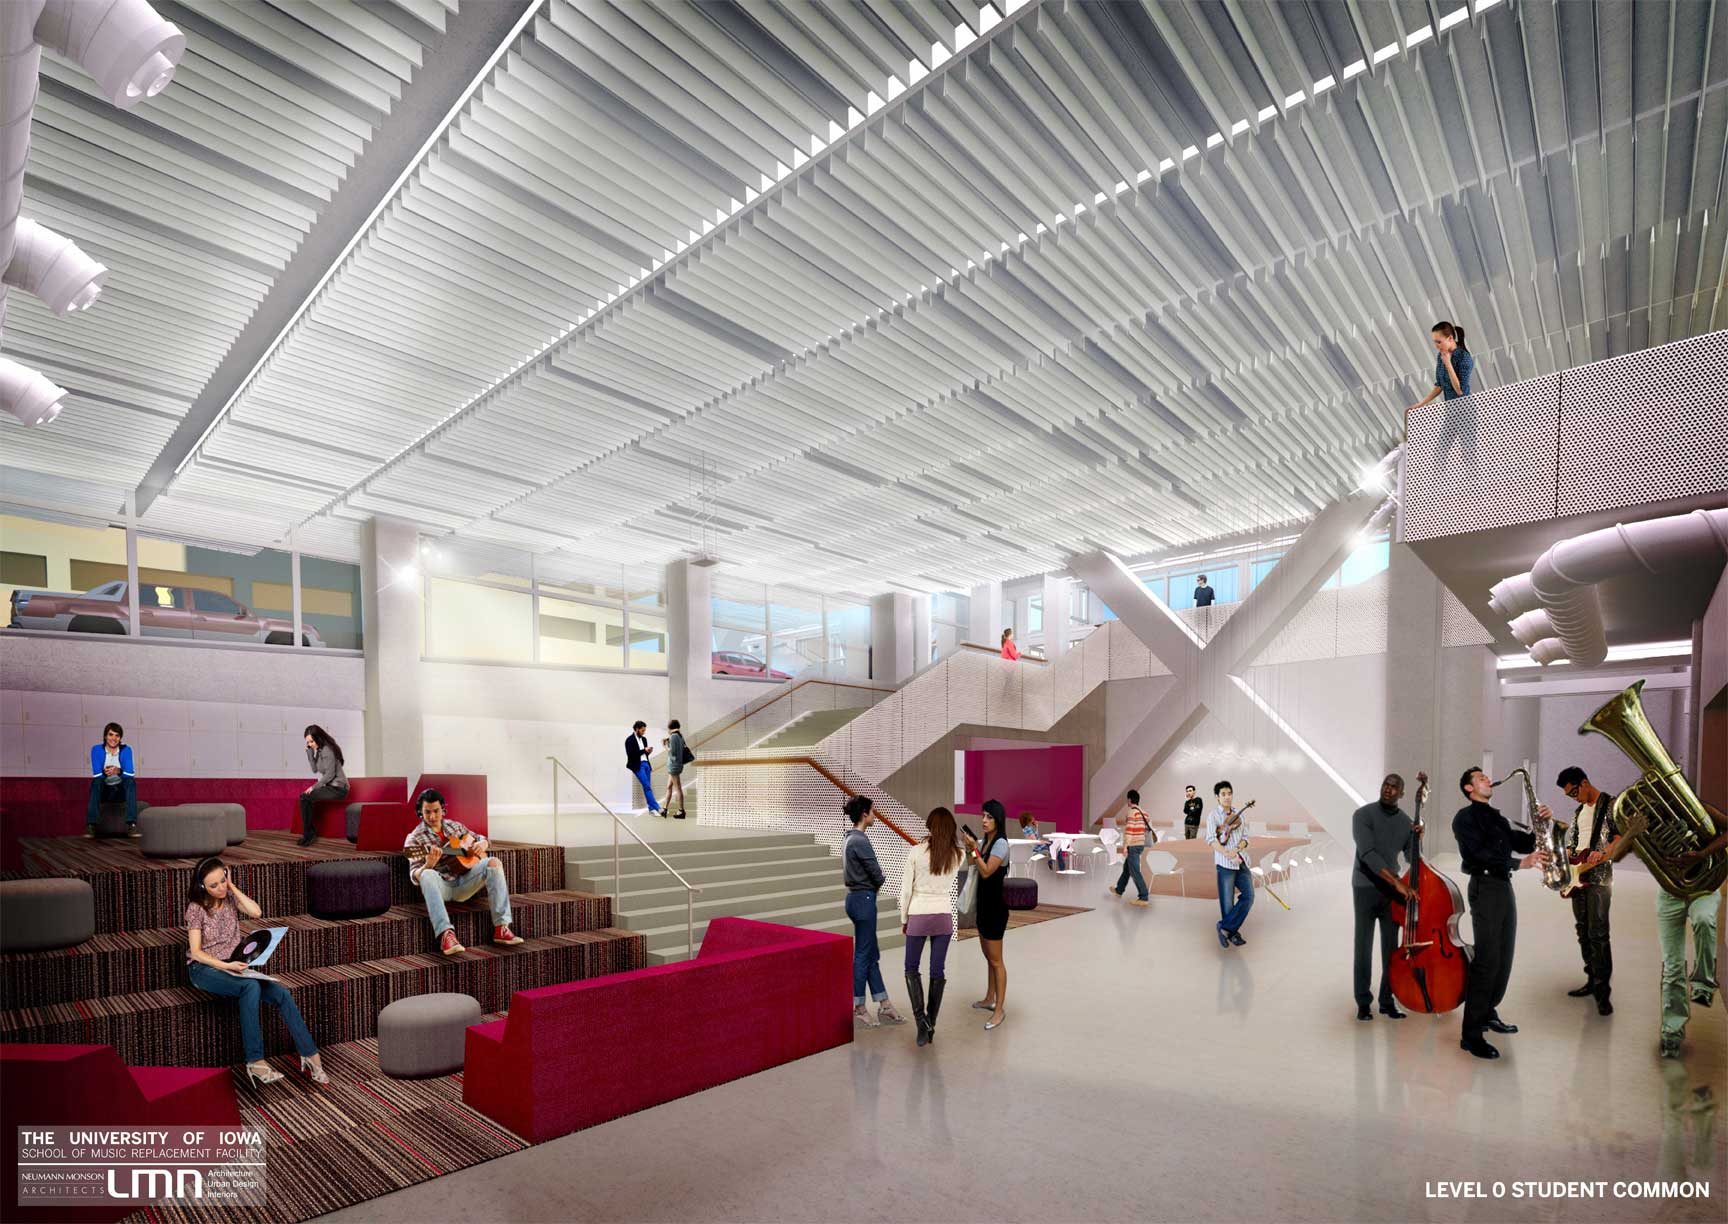 Building Renderings School Of Music College Of Liberal Arts And Sciences The University Of